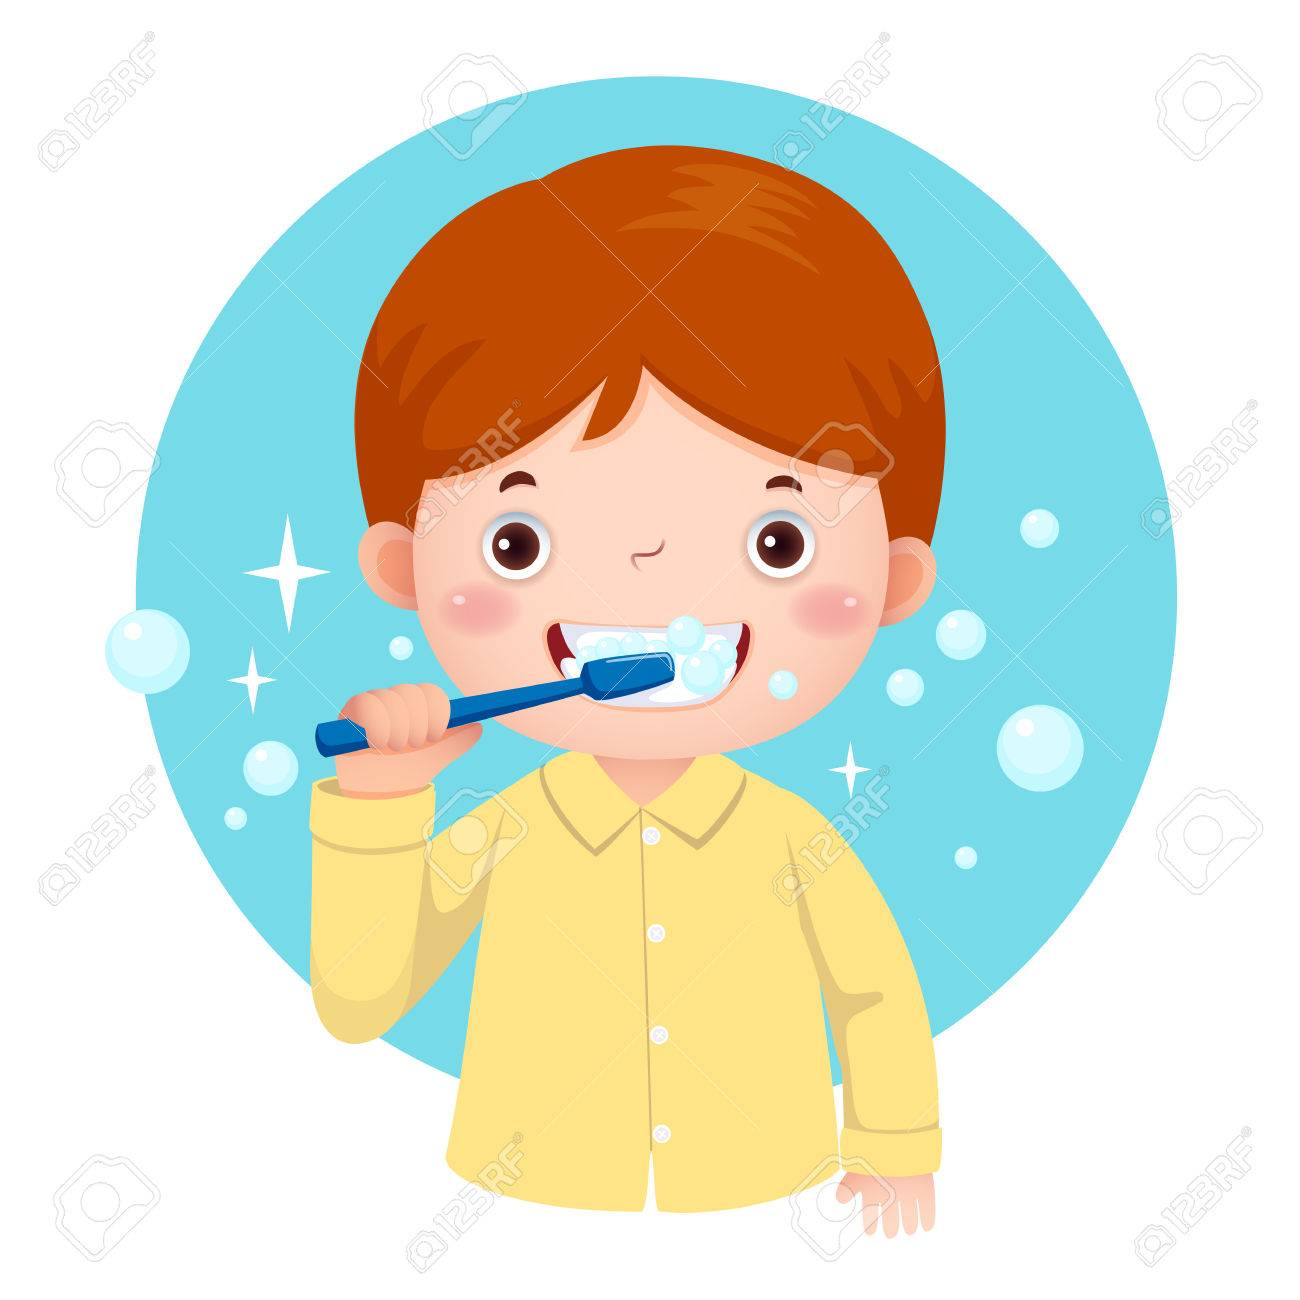 vector illustration of cute boy brushing his teeth royalty free